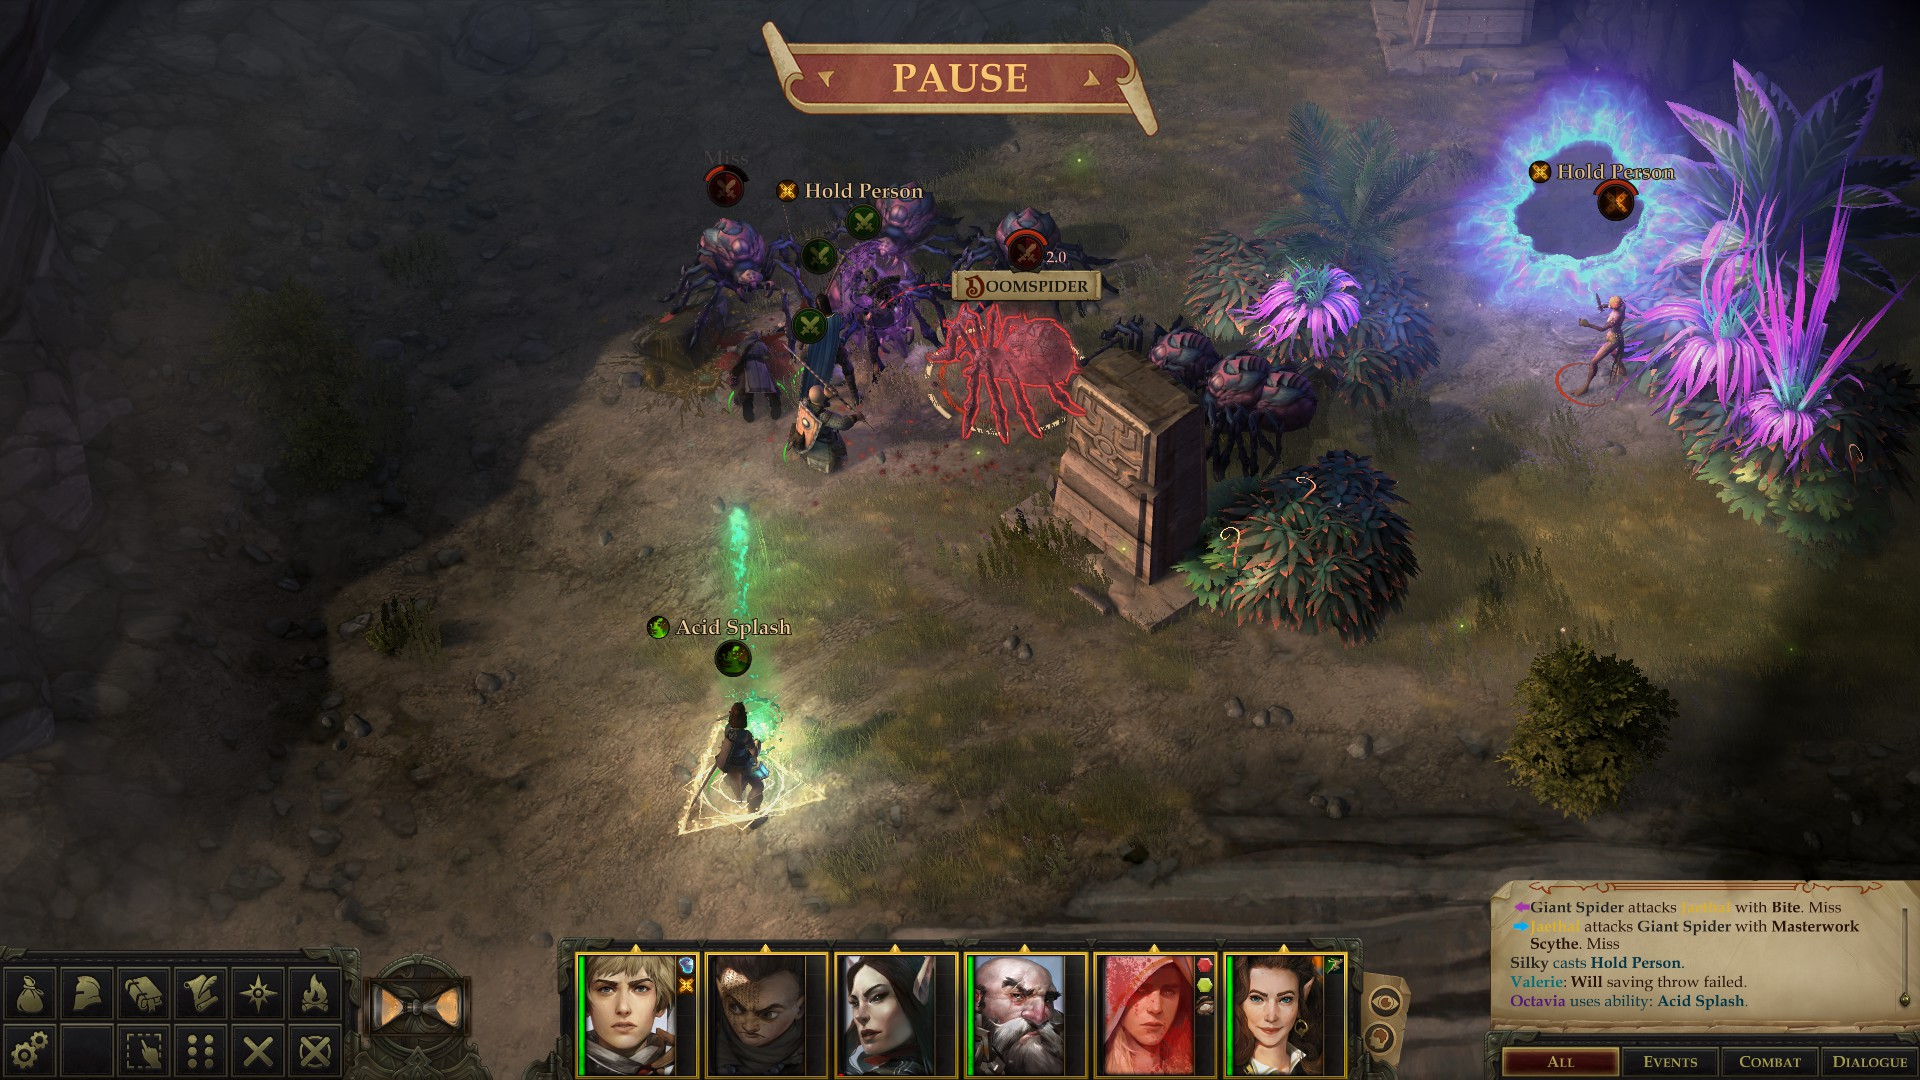 The infuriating design of Pathfinder: Kingmaker shows the